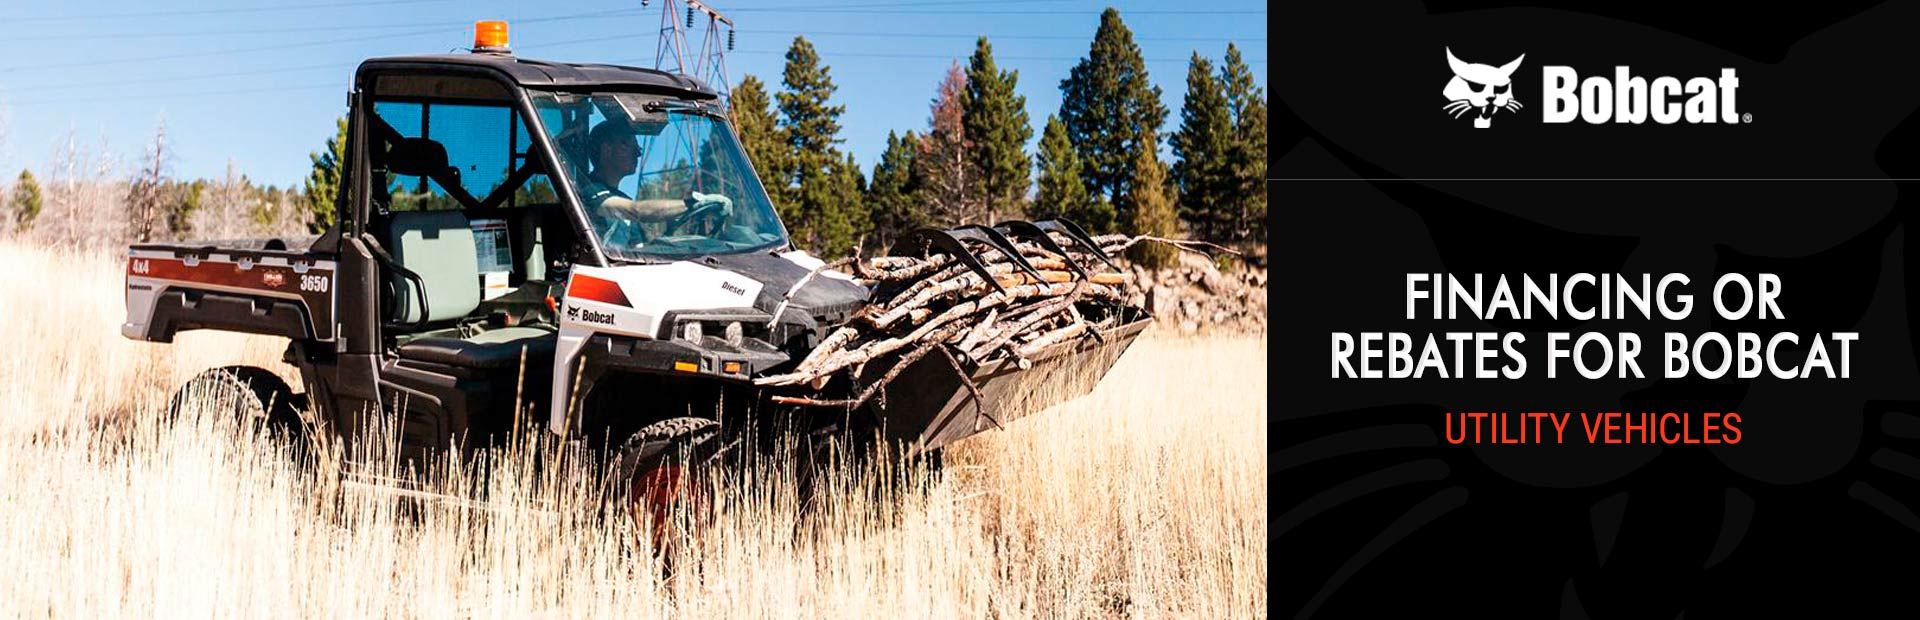 Bobcat: Financing or Rebates for Bobcat Utility Vehicles